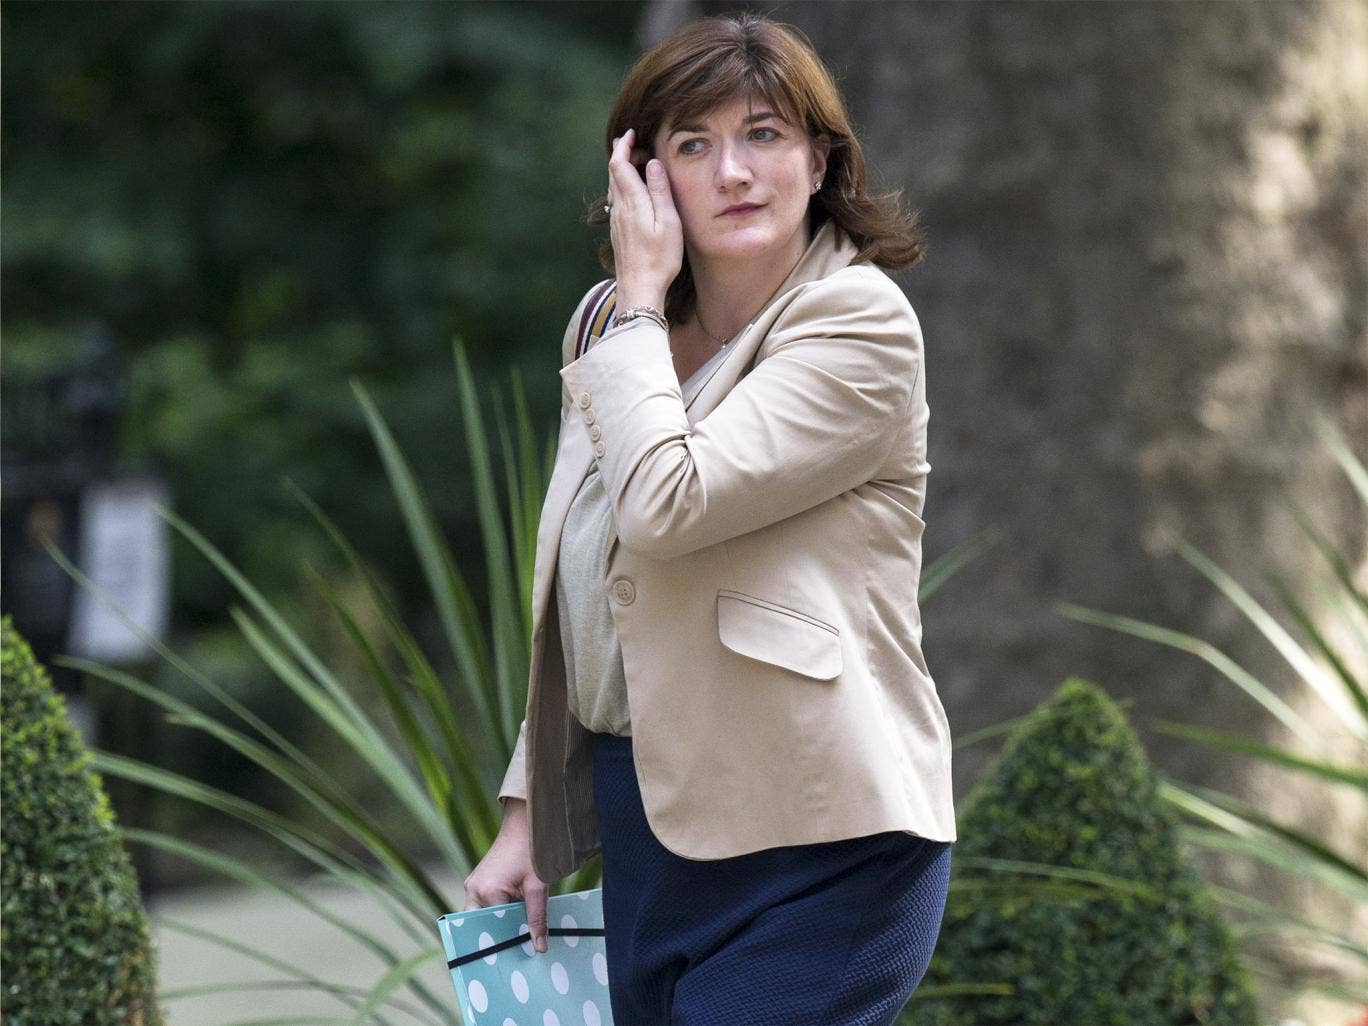 The new Education Secretary, Nicky Morgan